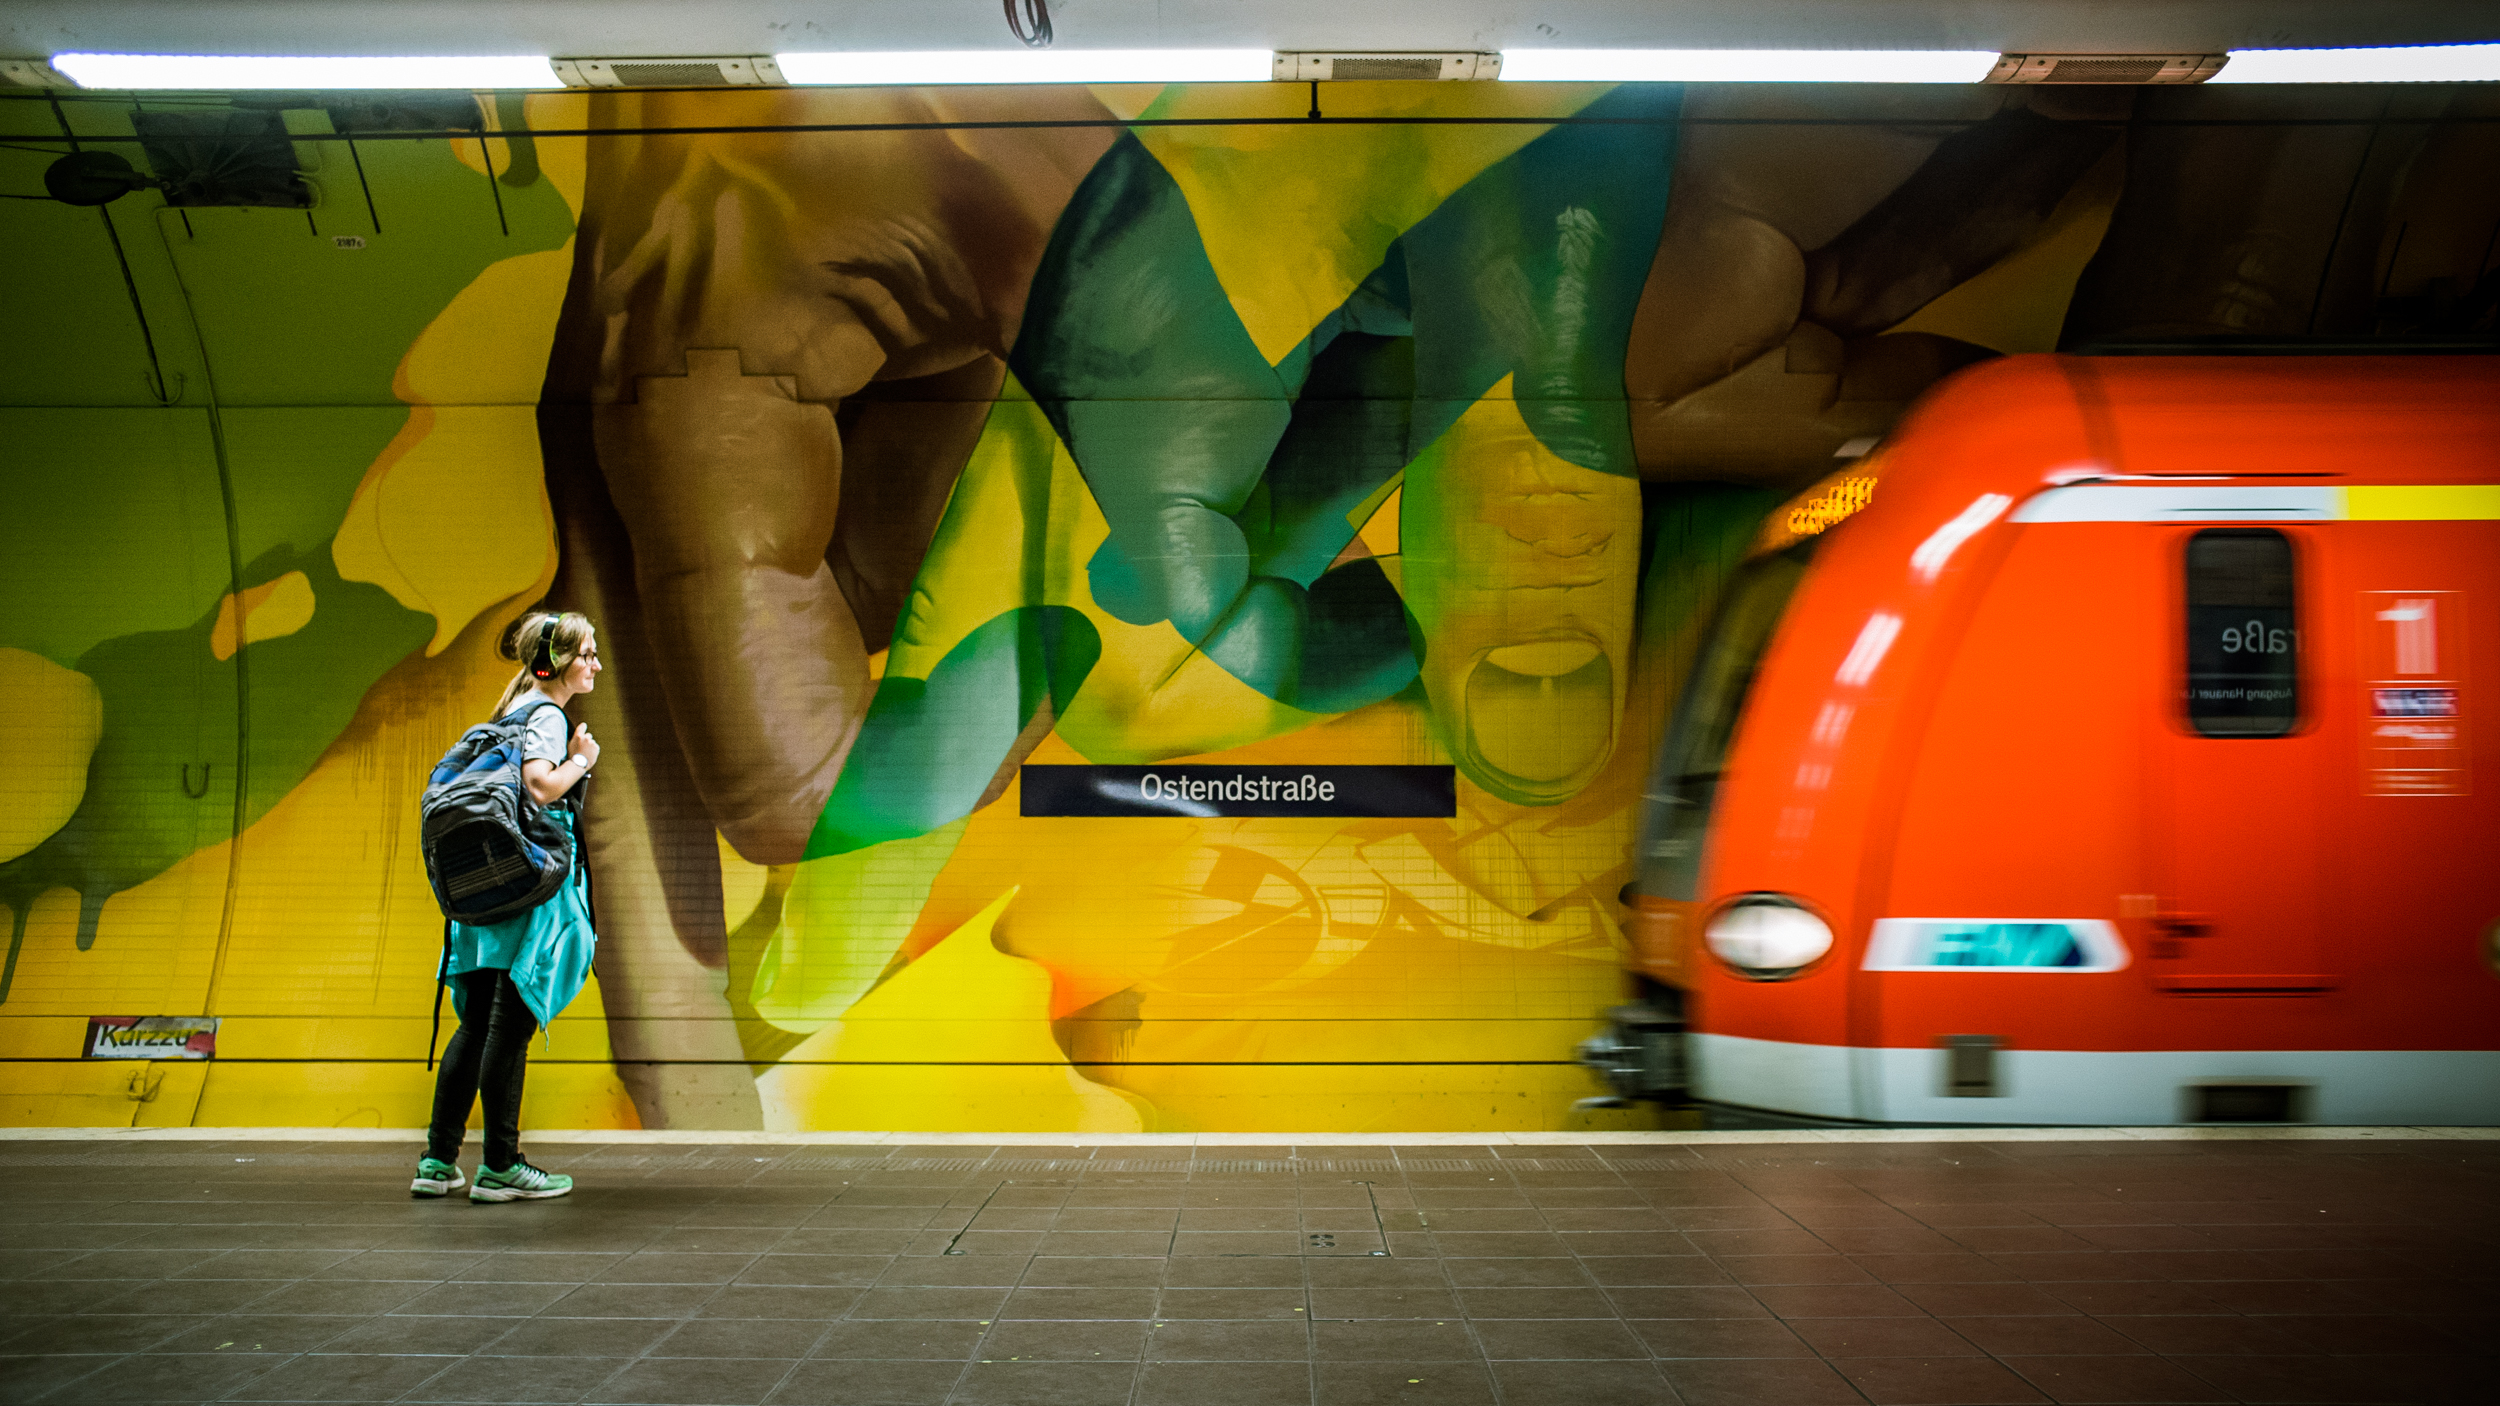 A work by Does - Ostendstrasse frankfurt germany tunnel 24